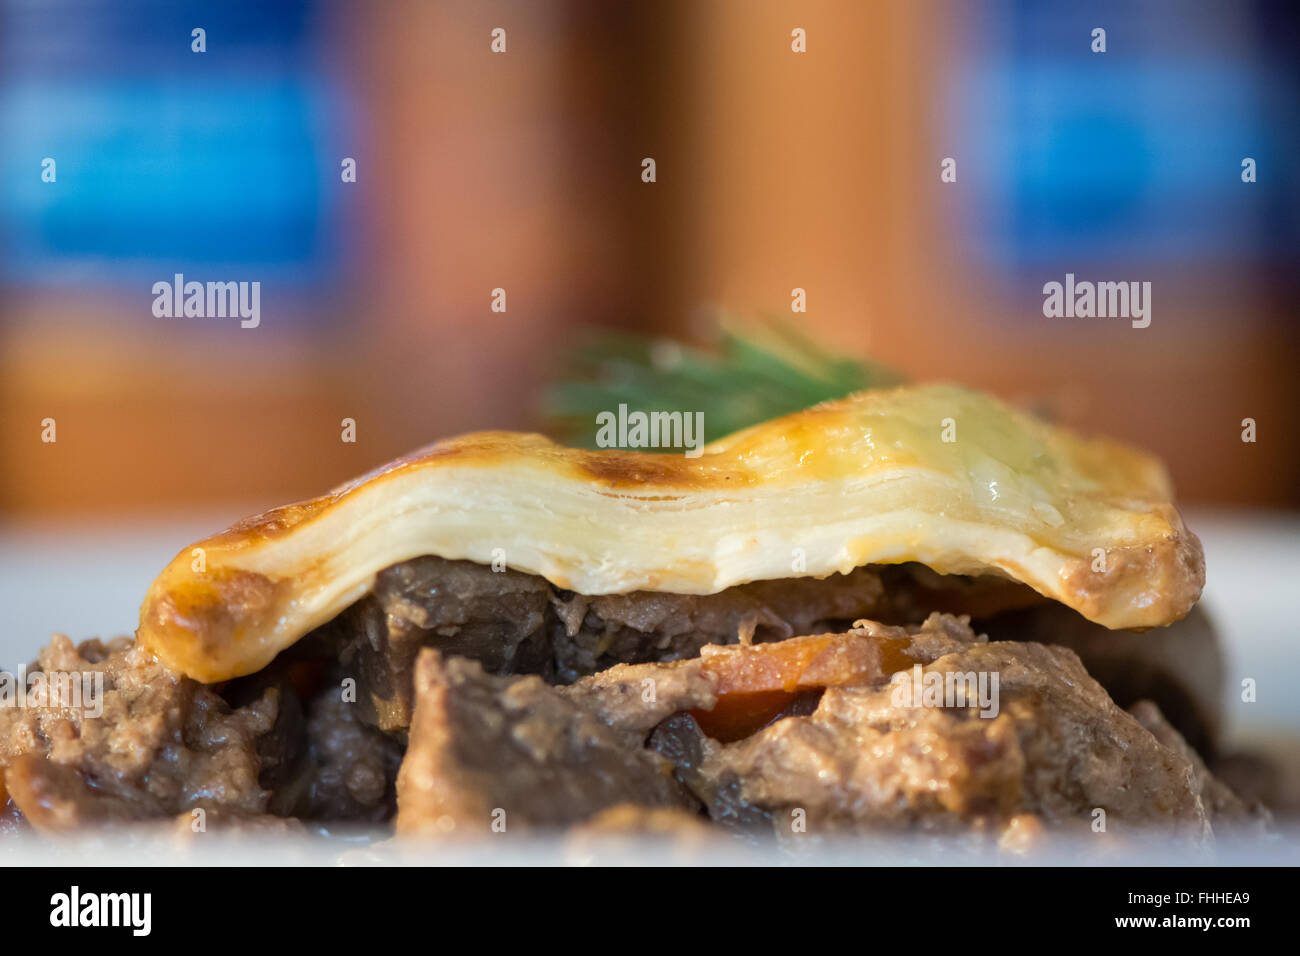 Steak and kidney pie. French restaurant prepared cuisine influenced by a traditional English recipe, presented on - Stock Image